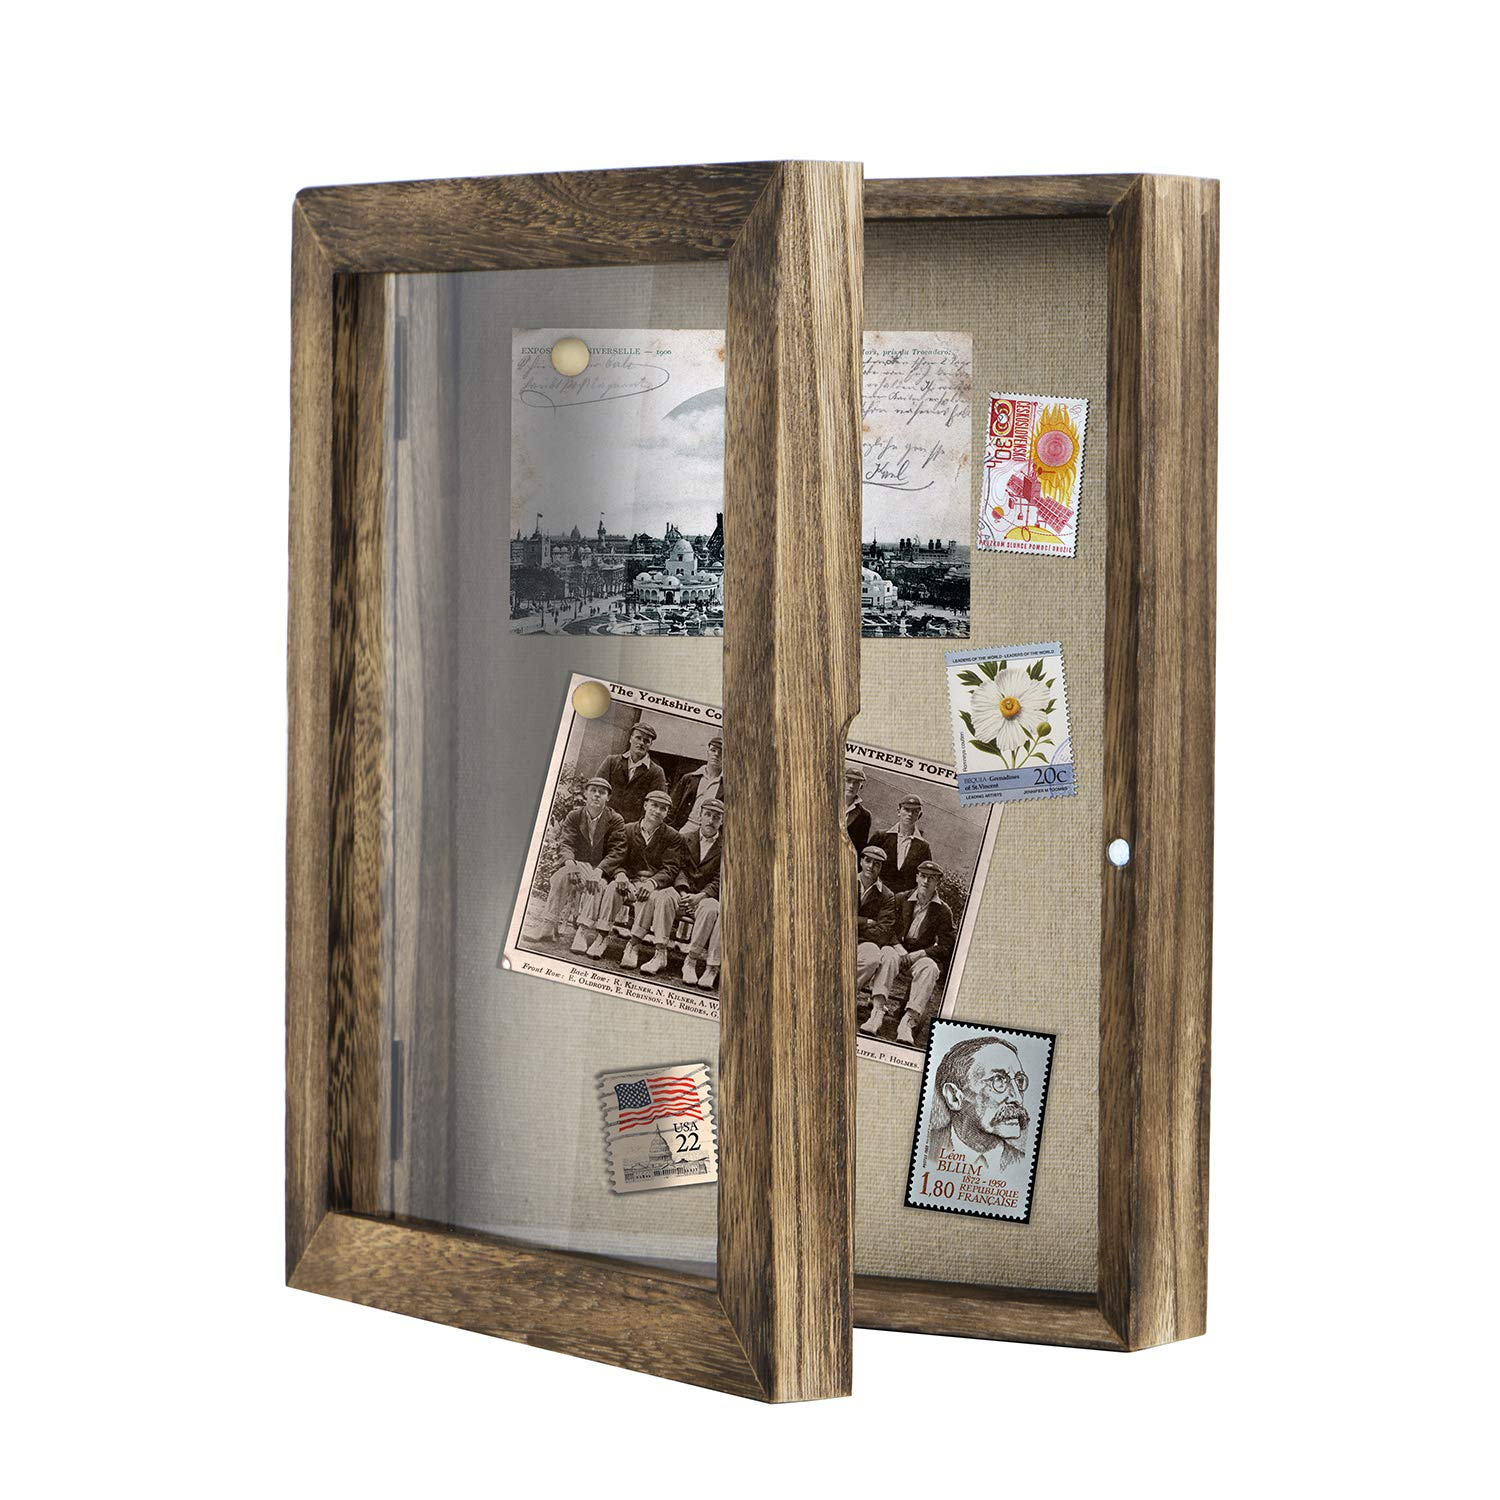 Love-KANKEI Shadow Box Frame 8x10 Shadow Box Display Case with Linen Back Memorabilia Awards Medals Photos Memory Box by Love-KANKEI